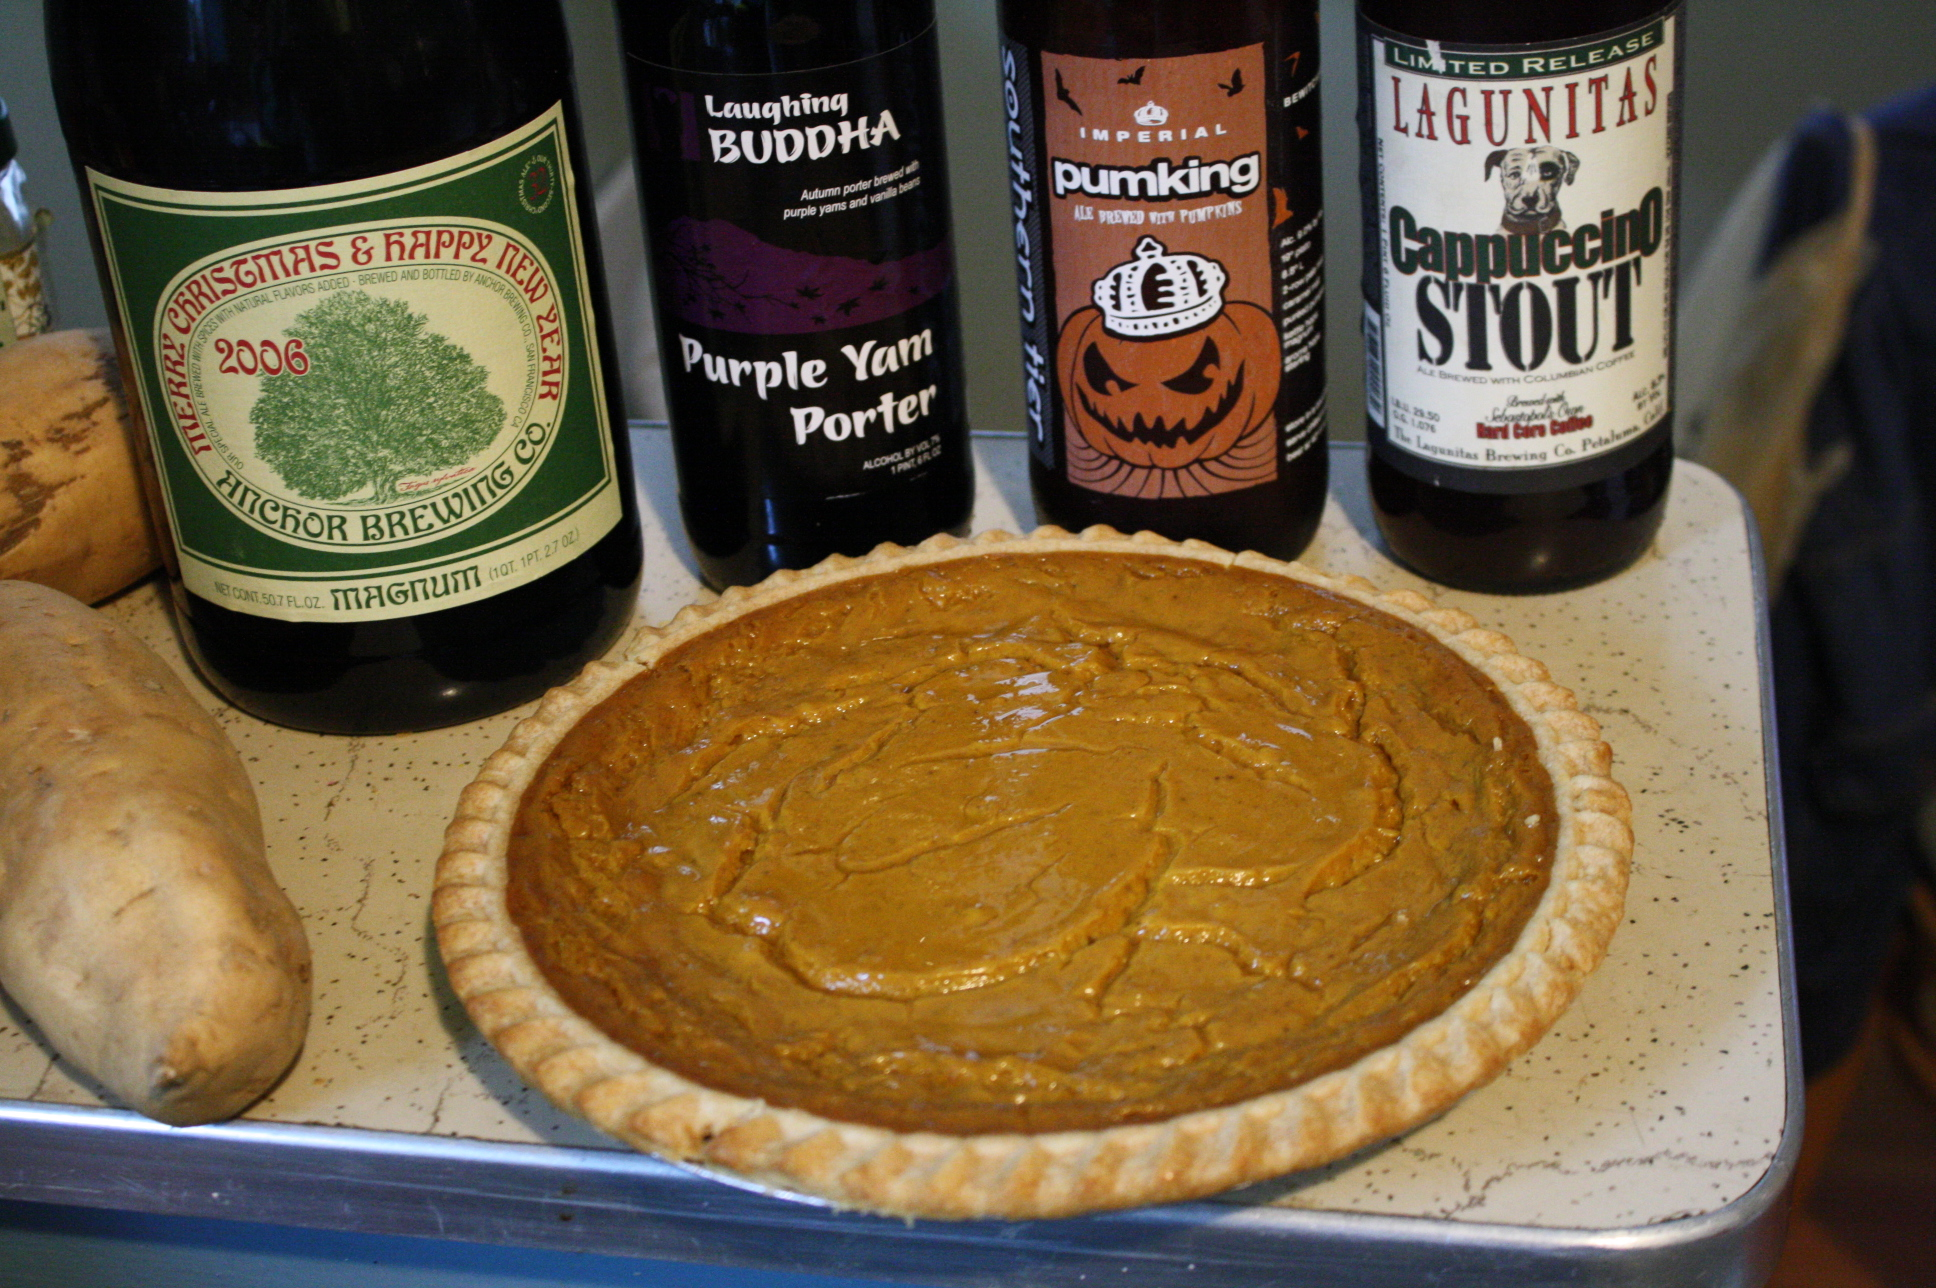 Holiday beer pairings